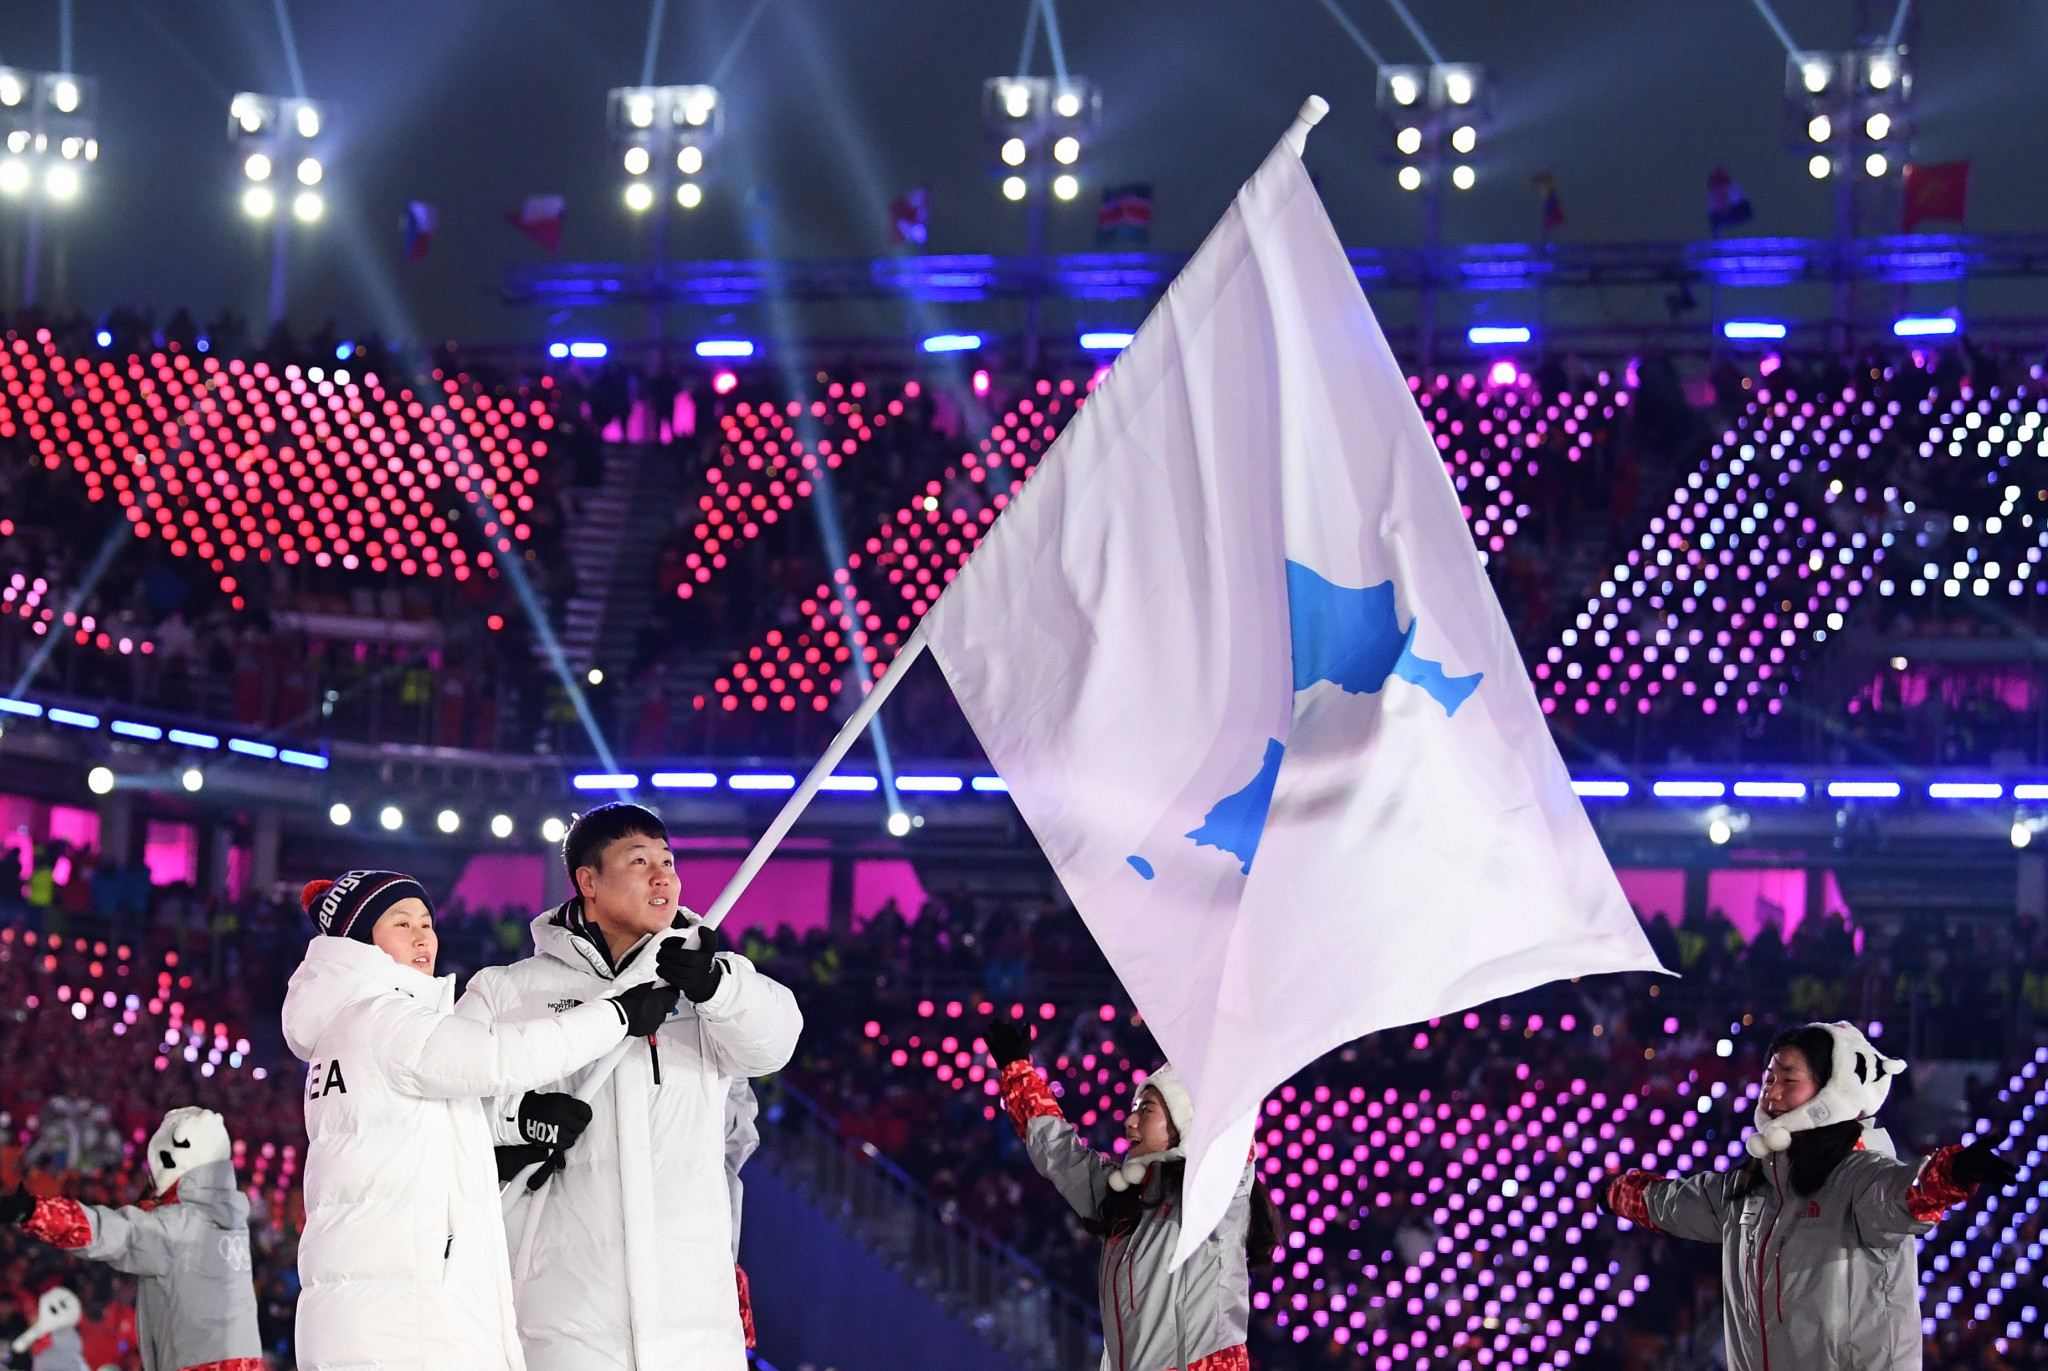 Joint Korean relations took a big step forward at Pyeongchang 2018 ©Getty Images